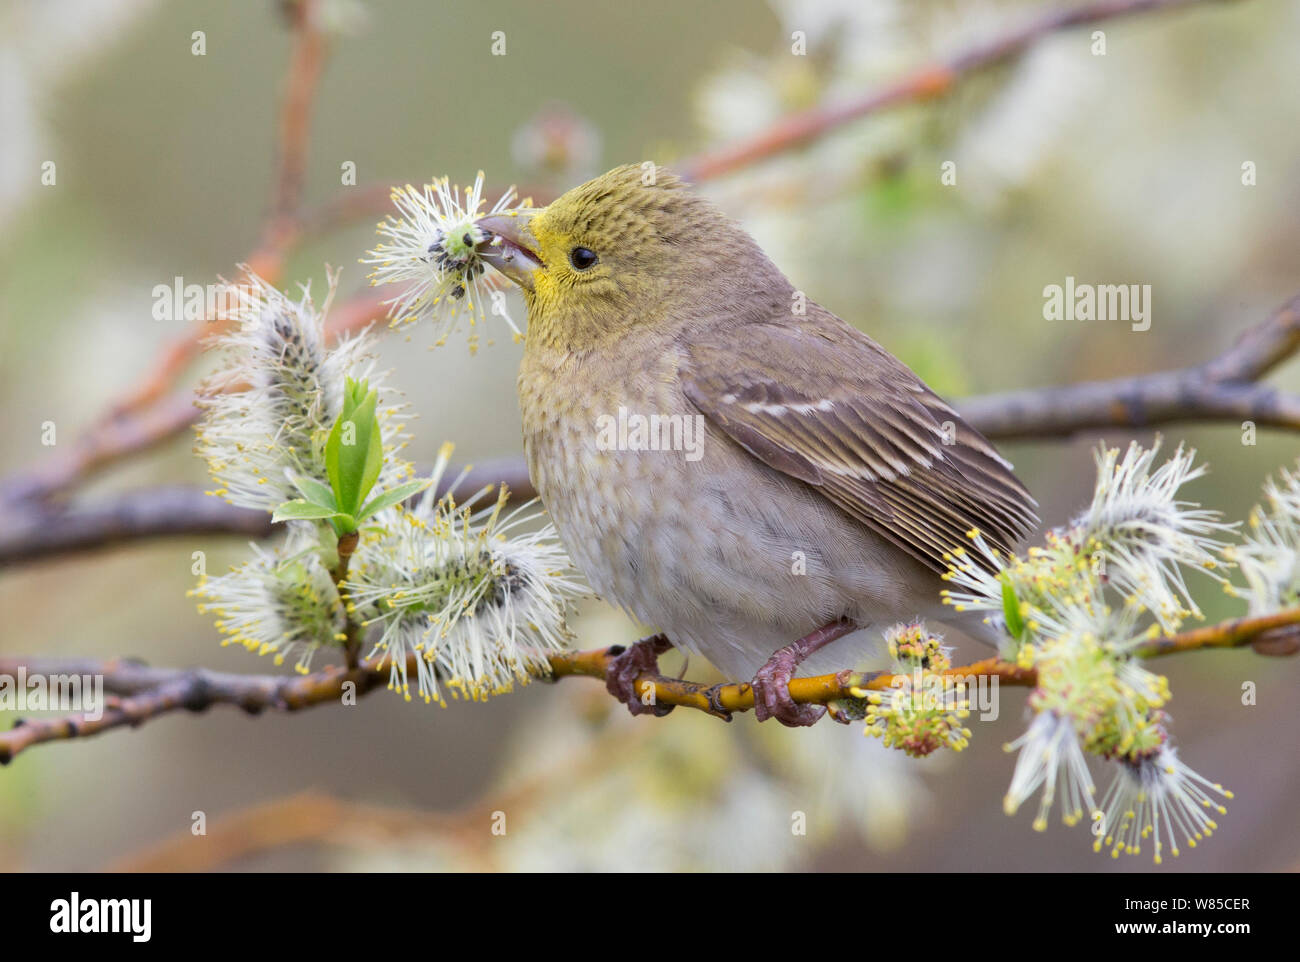 Scarlet rosefinch (Carpodacus erythrinus) feeding, head covered in Willow pollen, Uto, Finland, May. Stock Photo